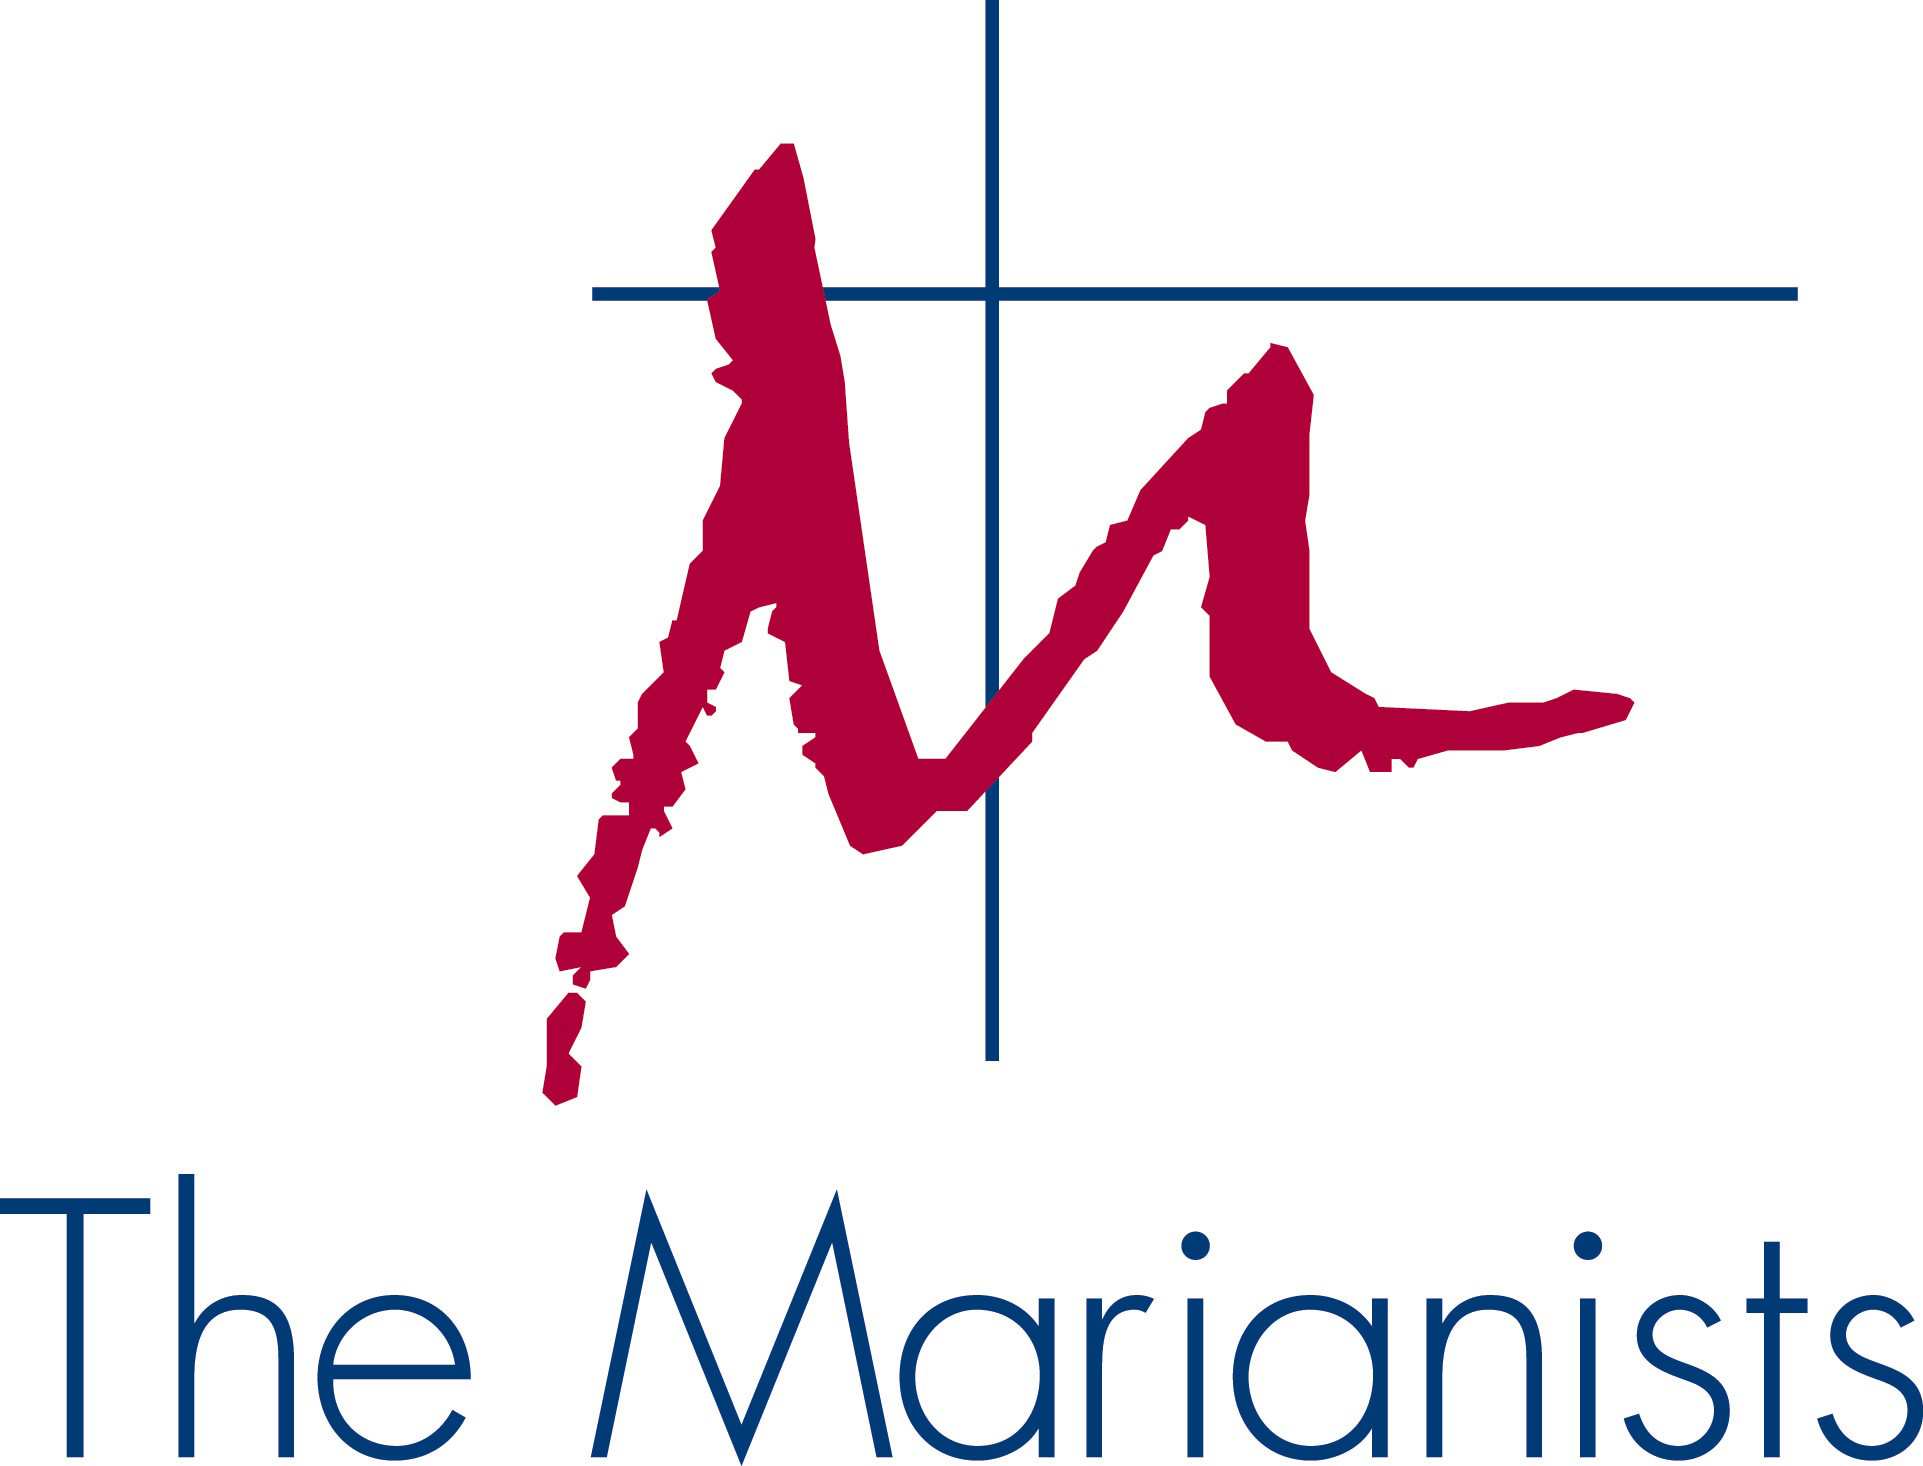 The Marianists